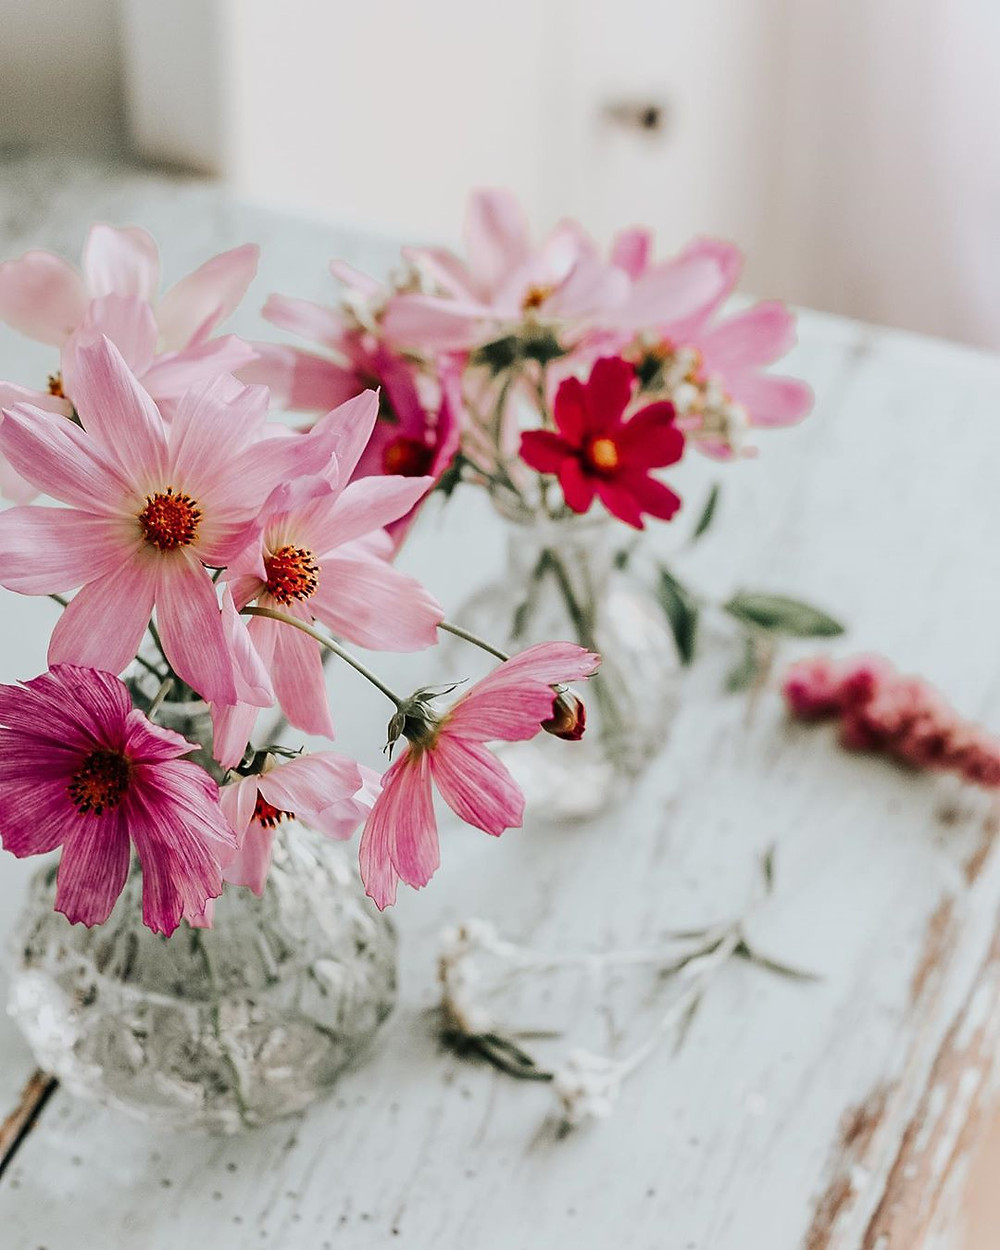 Cosmos flower meaning Jessica Turner Designs Blog